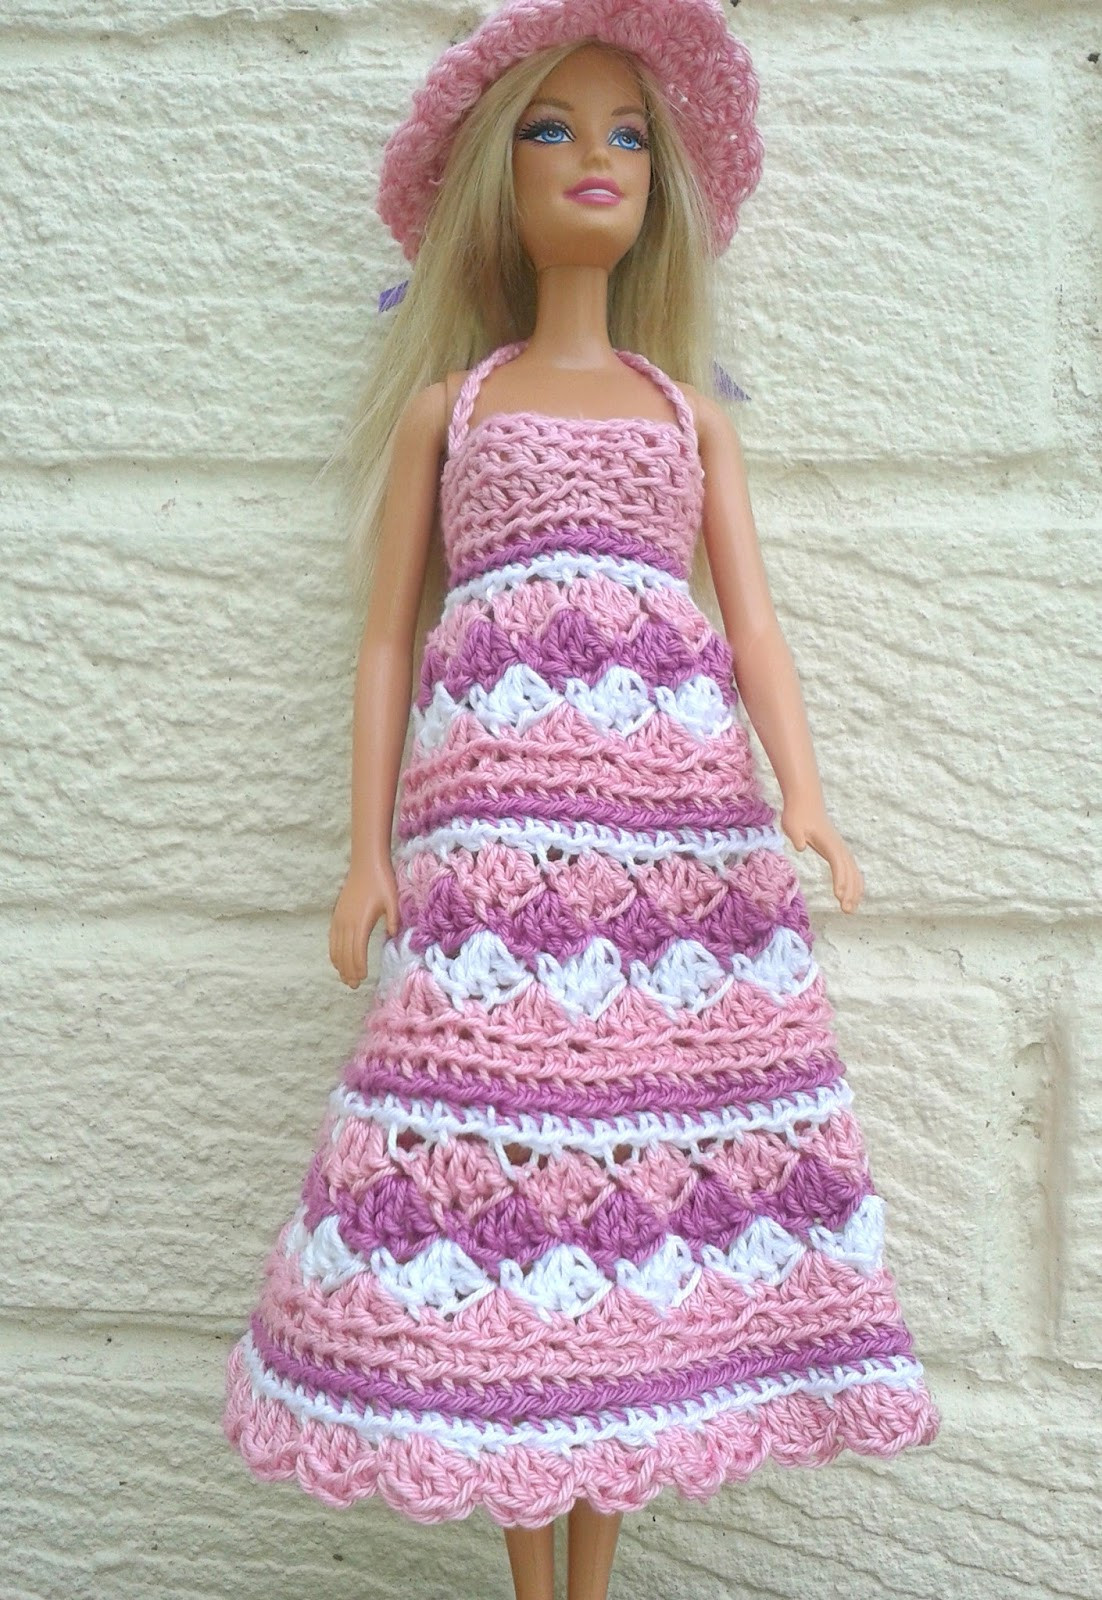 Linmary Knits Barbie crochet summer dress and hat